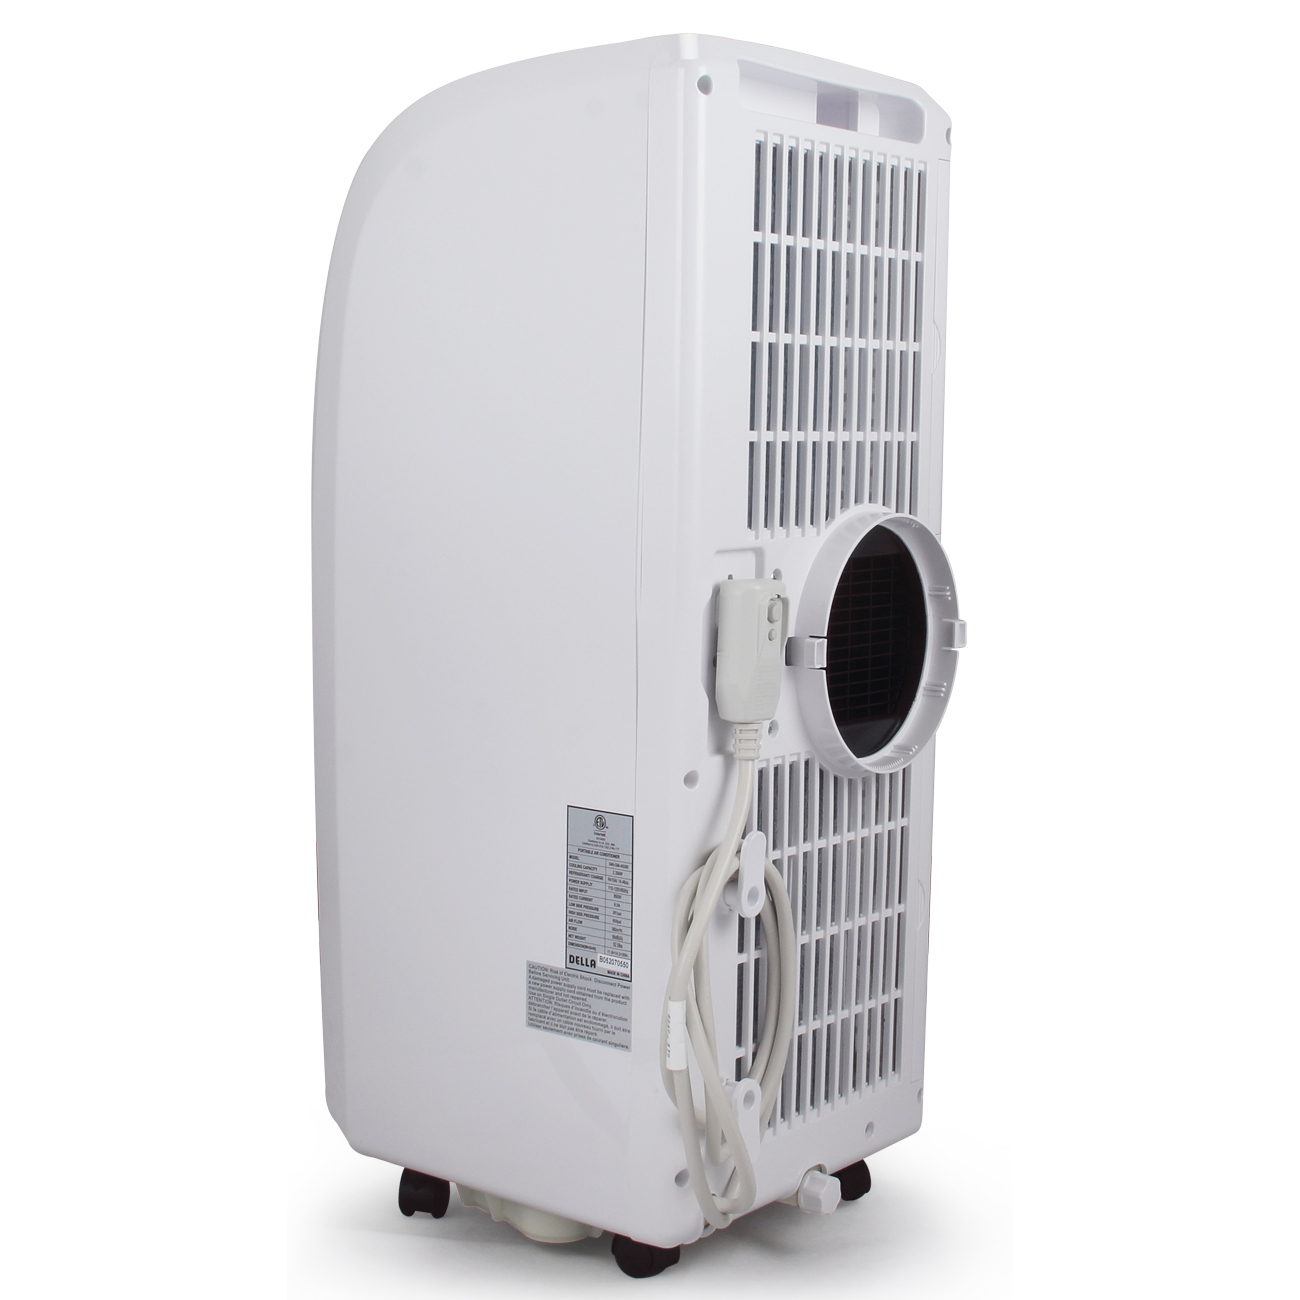 #1E1A1D 8 000 BTU Portable Air Conditioner And Dehumidifier  2017 13612 Portable Dehumidifier Air Conditioner photo with 1300x1300 px on helpvideos.info - Air Conditioners, Air Coolers and more